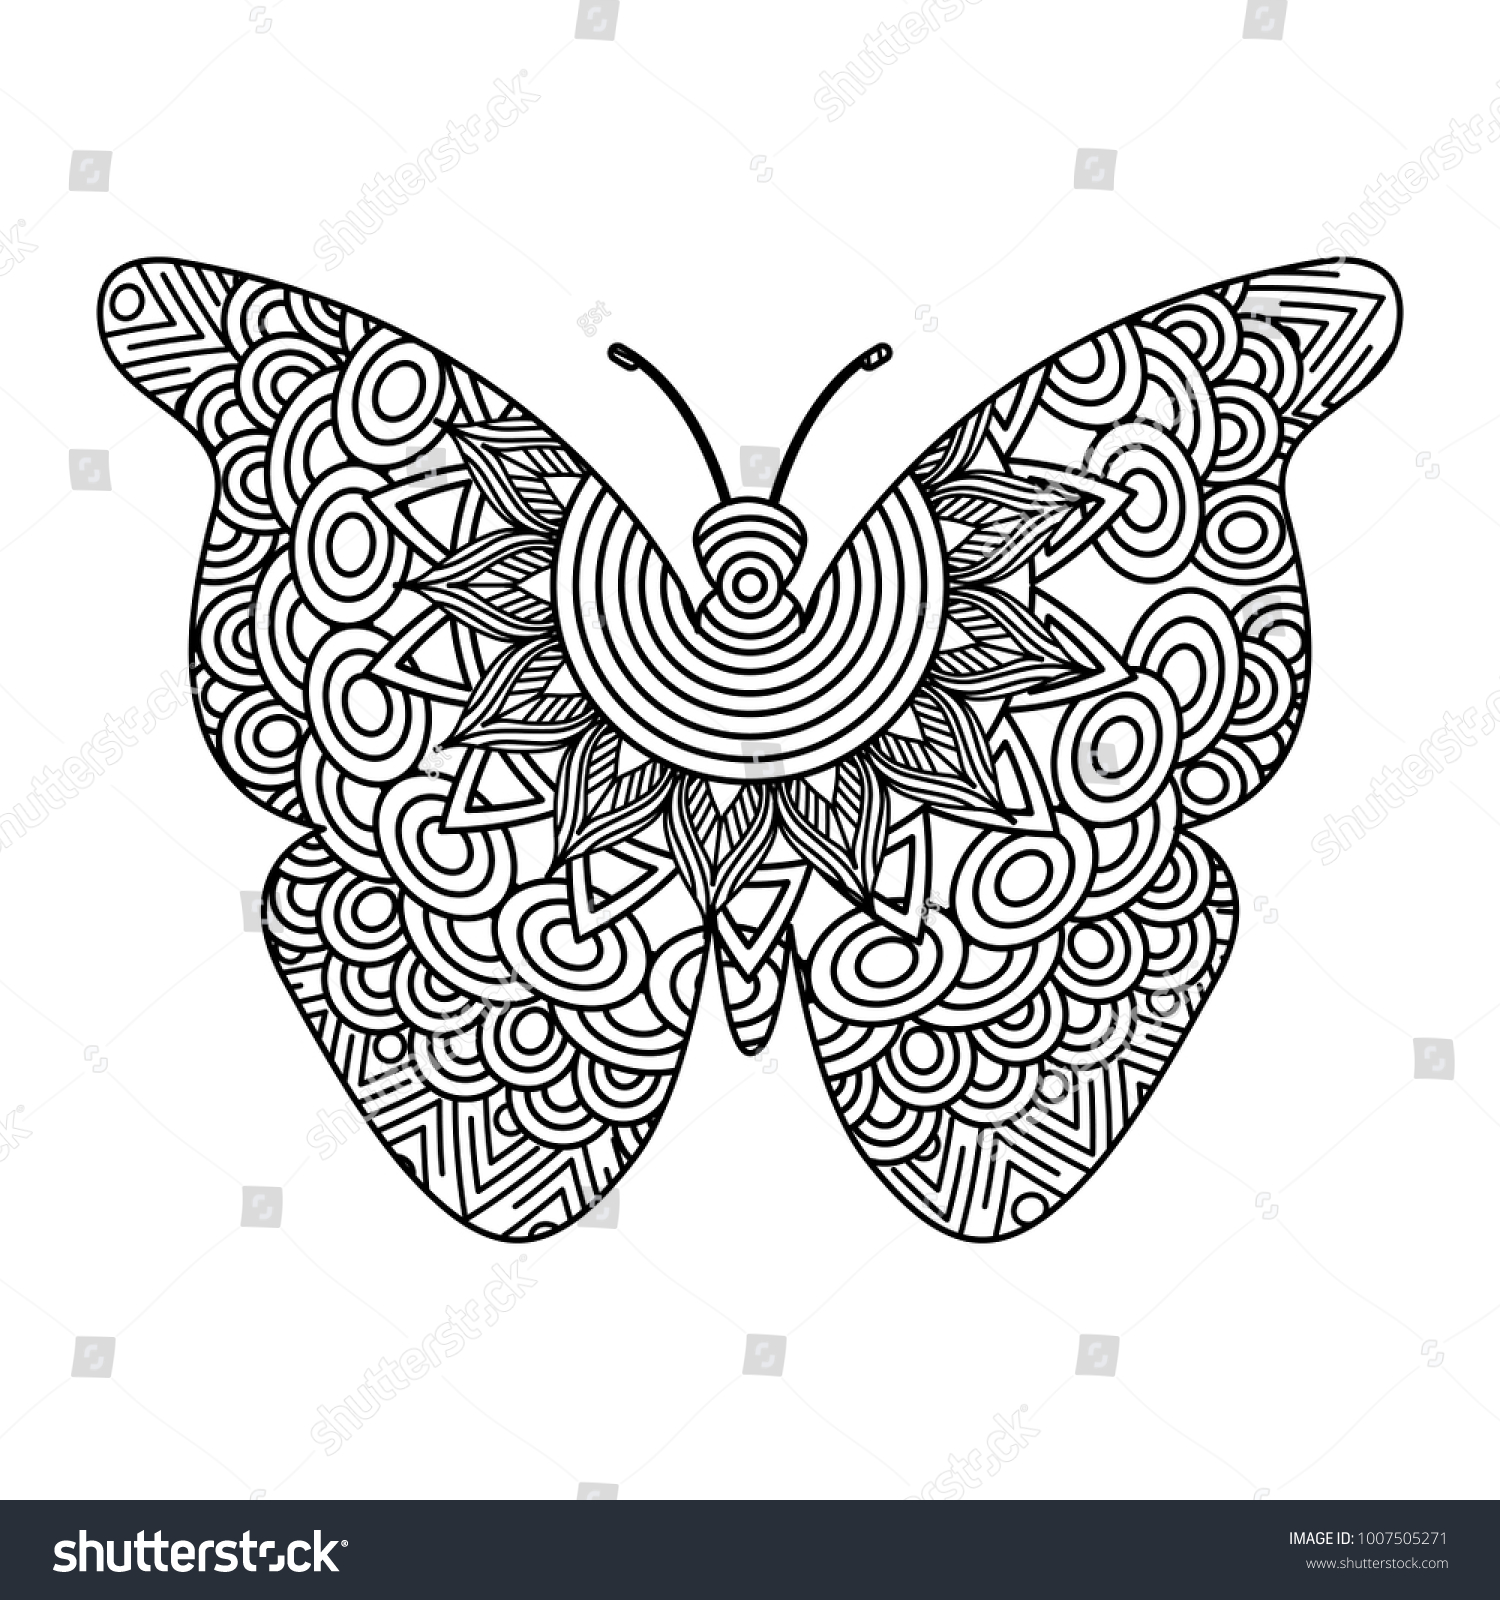 Hand Drawn Adult Coloring Pages Butterfly Stock Vector (Royalty Free ...